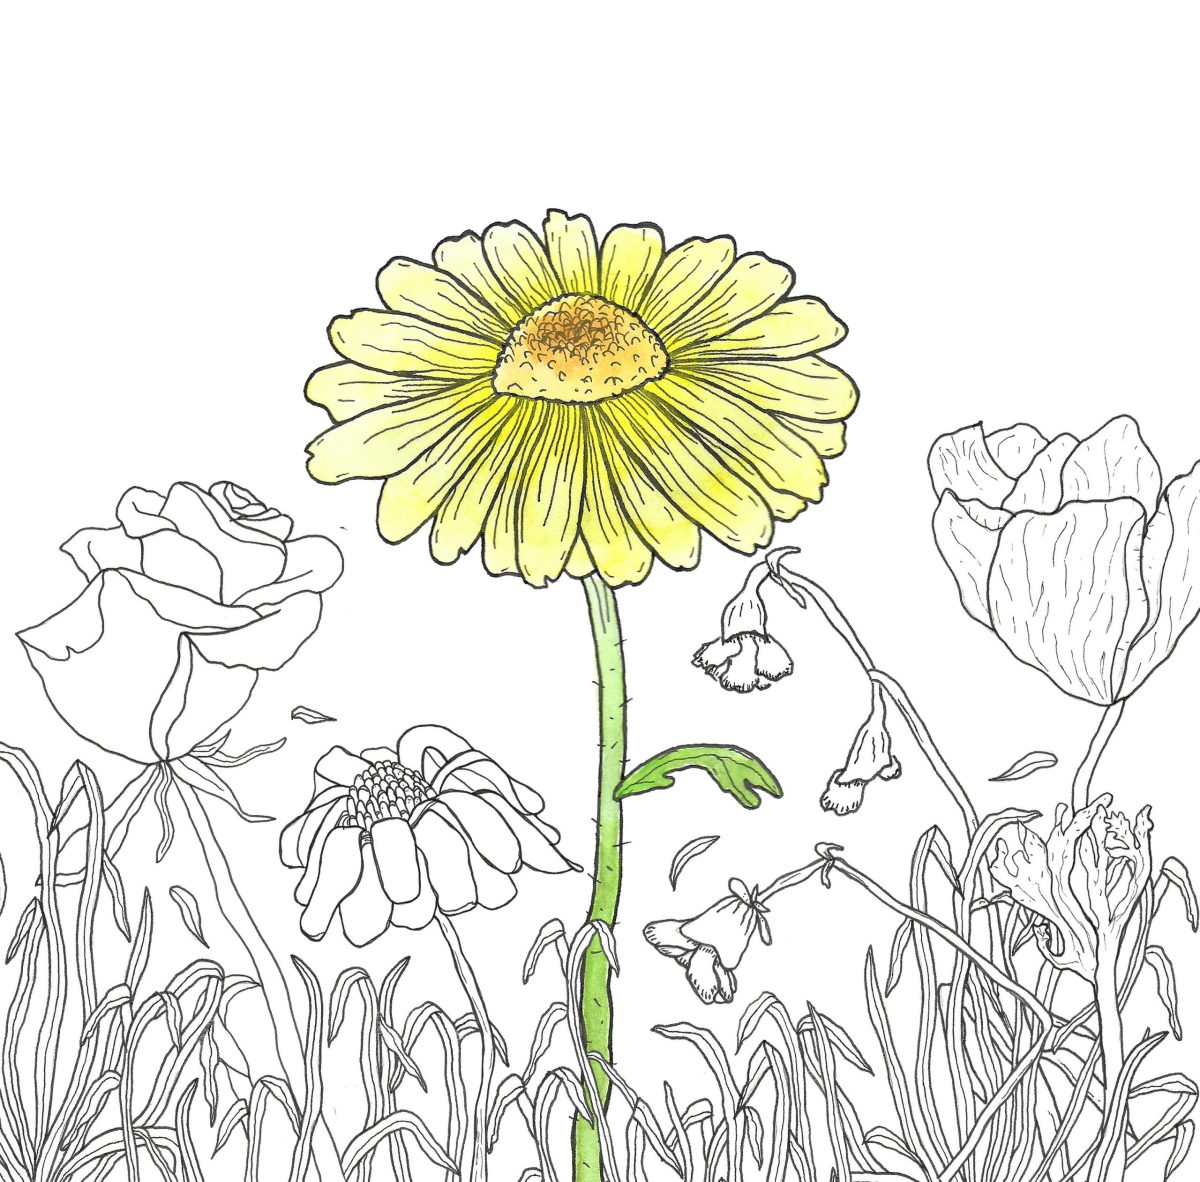 Illustration of yellow flower blooming